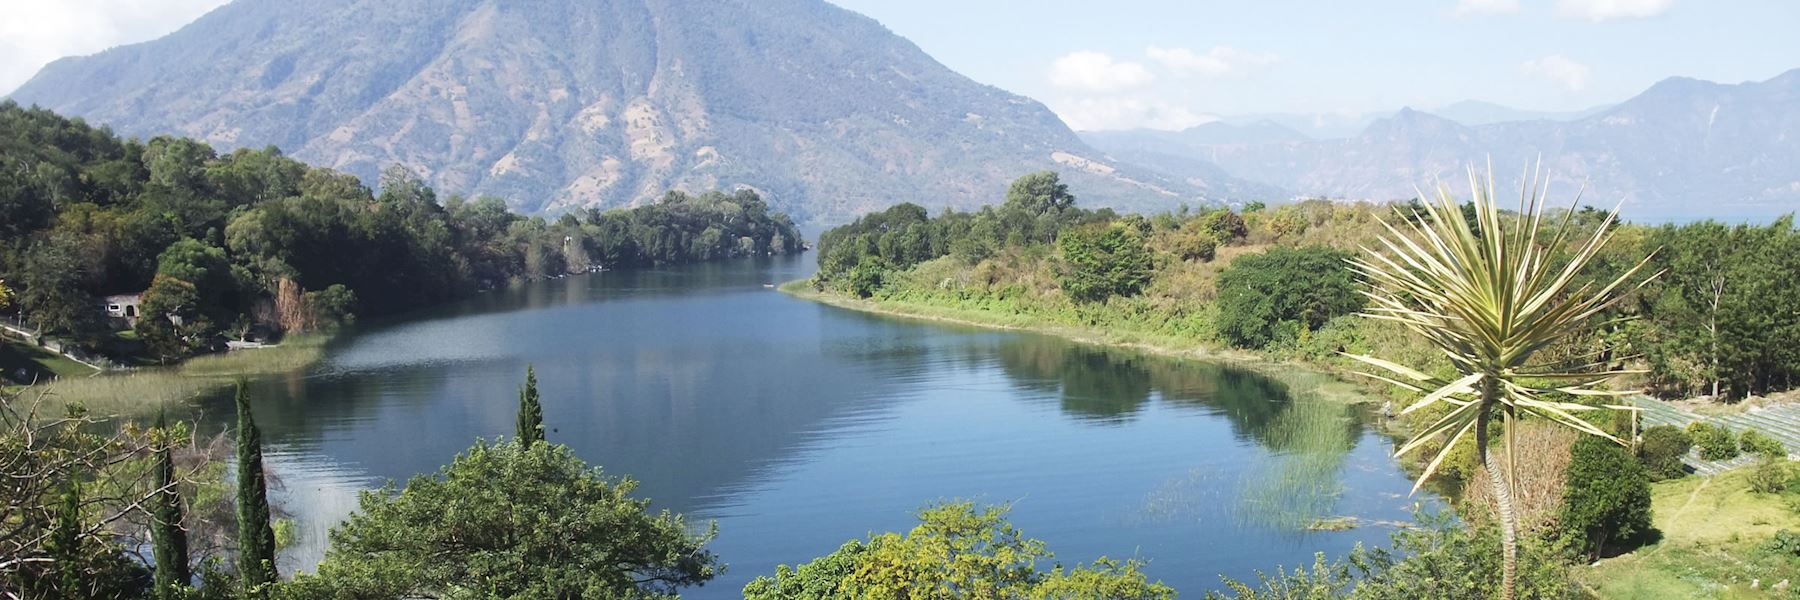 When Is The Best Time To Visit Guatemala